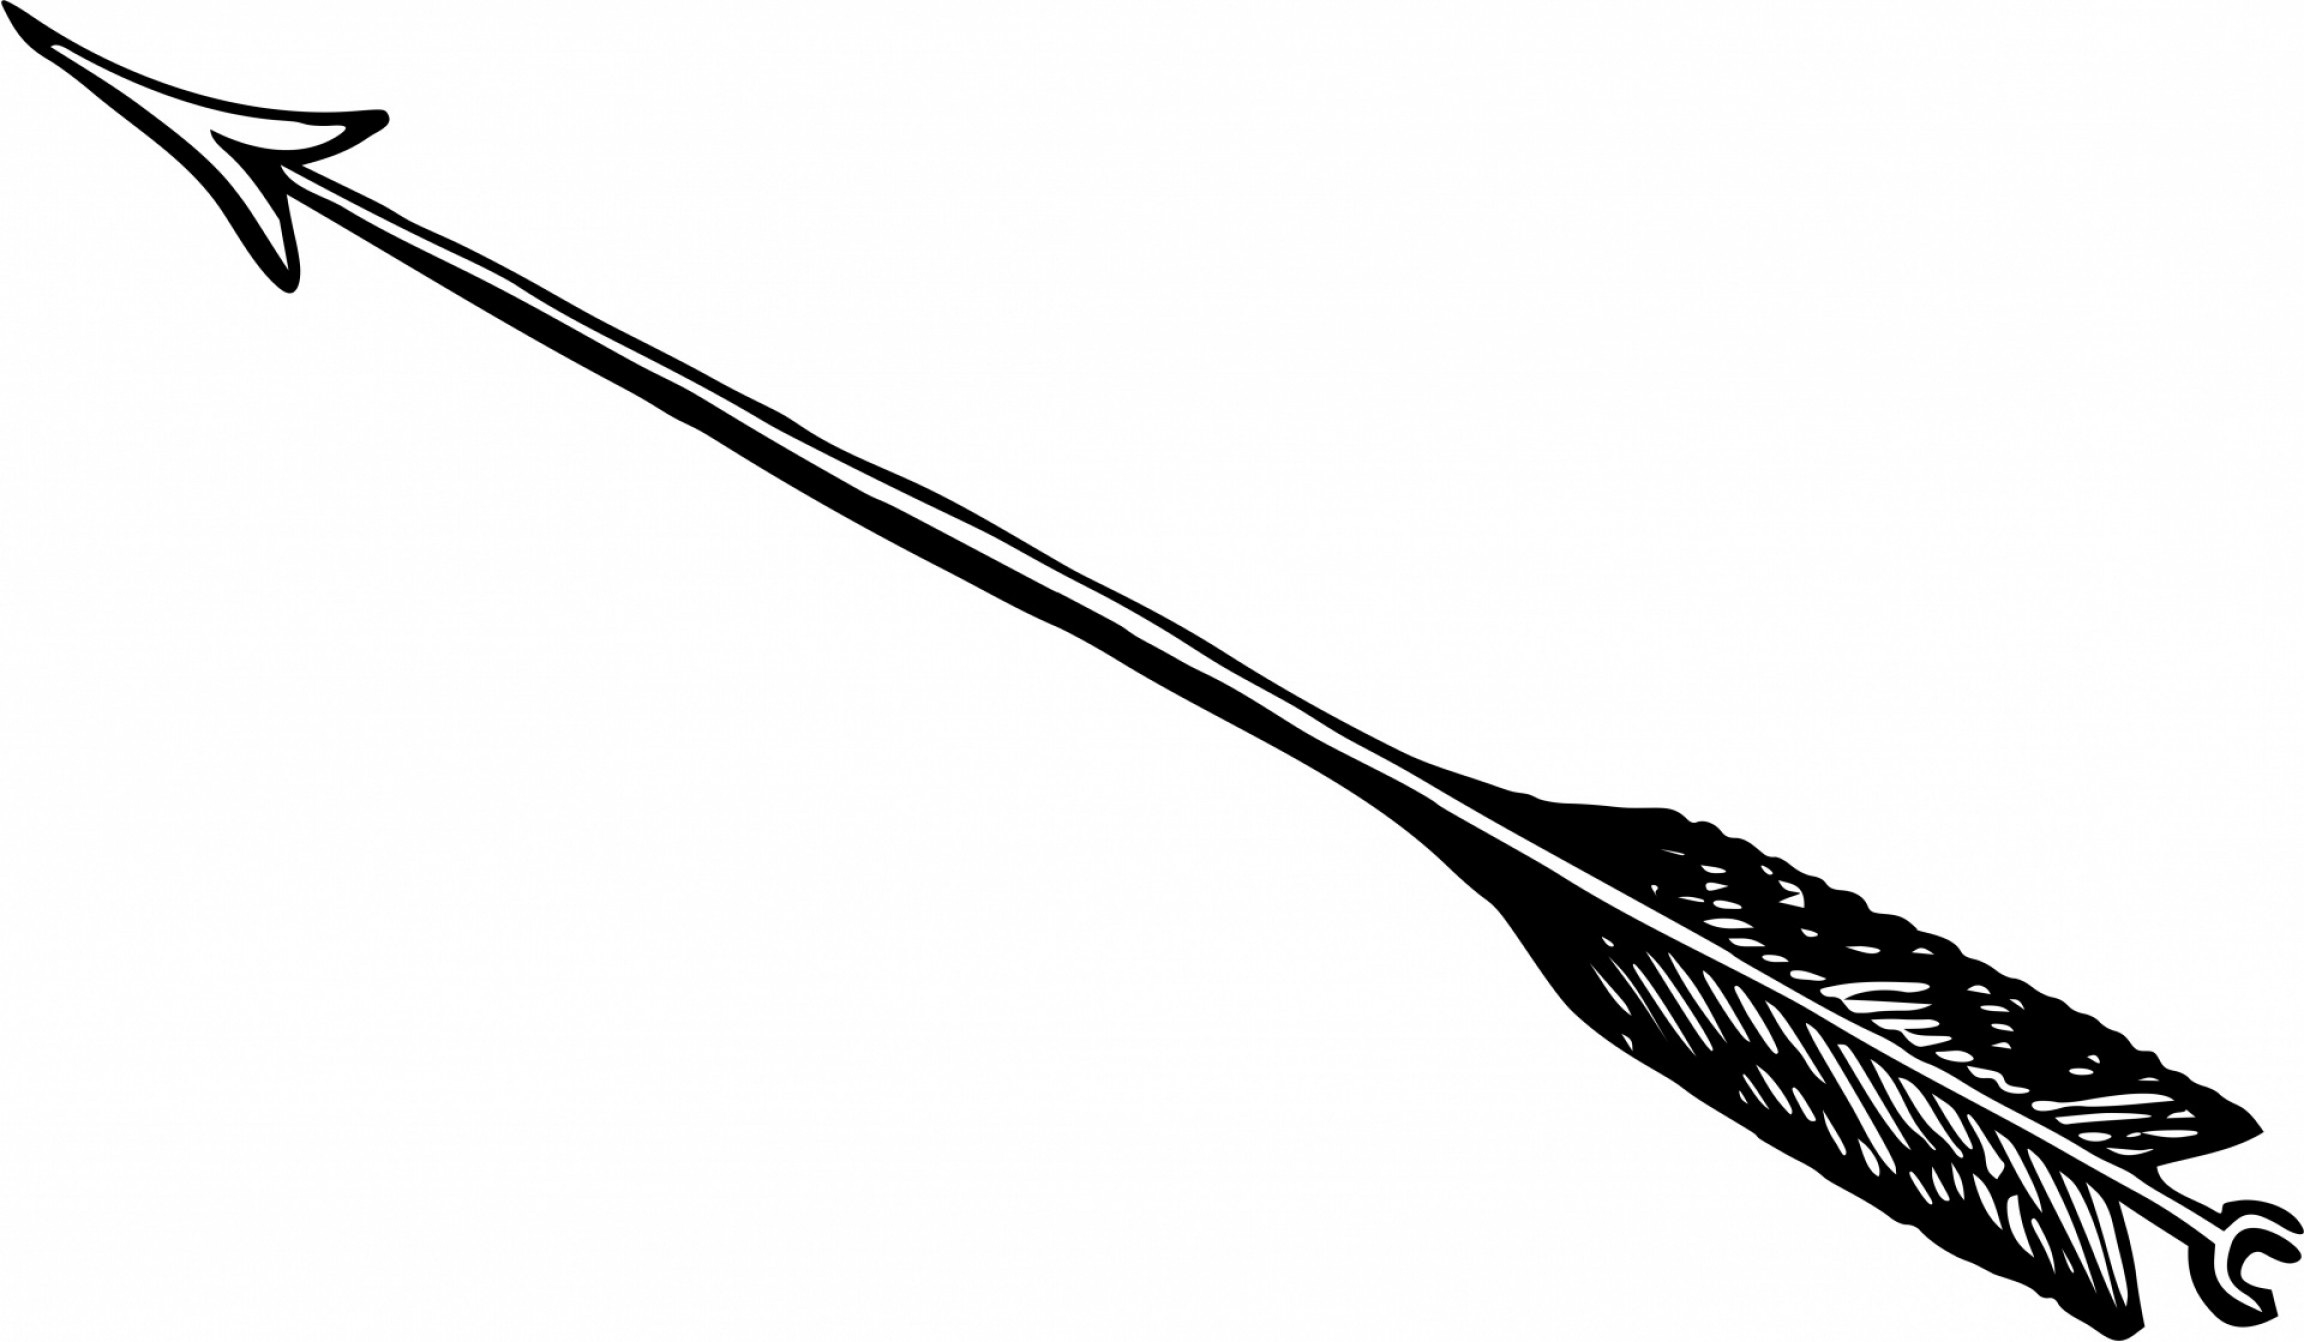 Arrow clipart black and white Elegant Arrow Clipart Black.